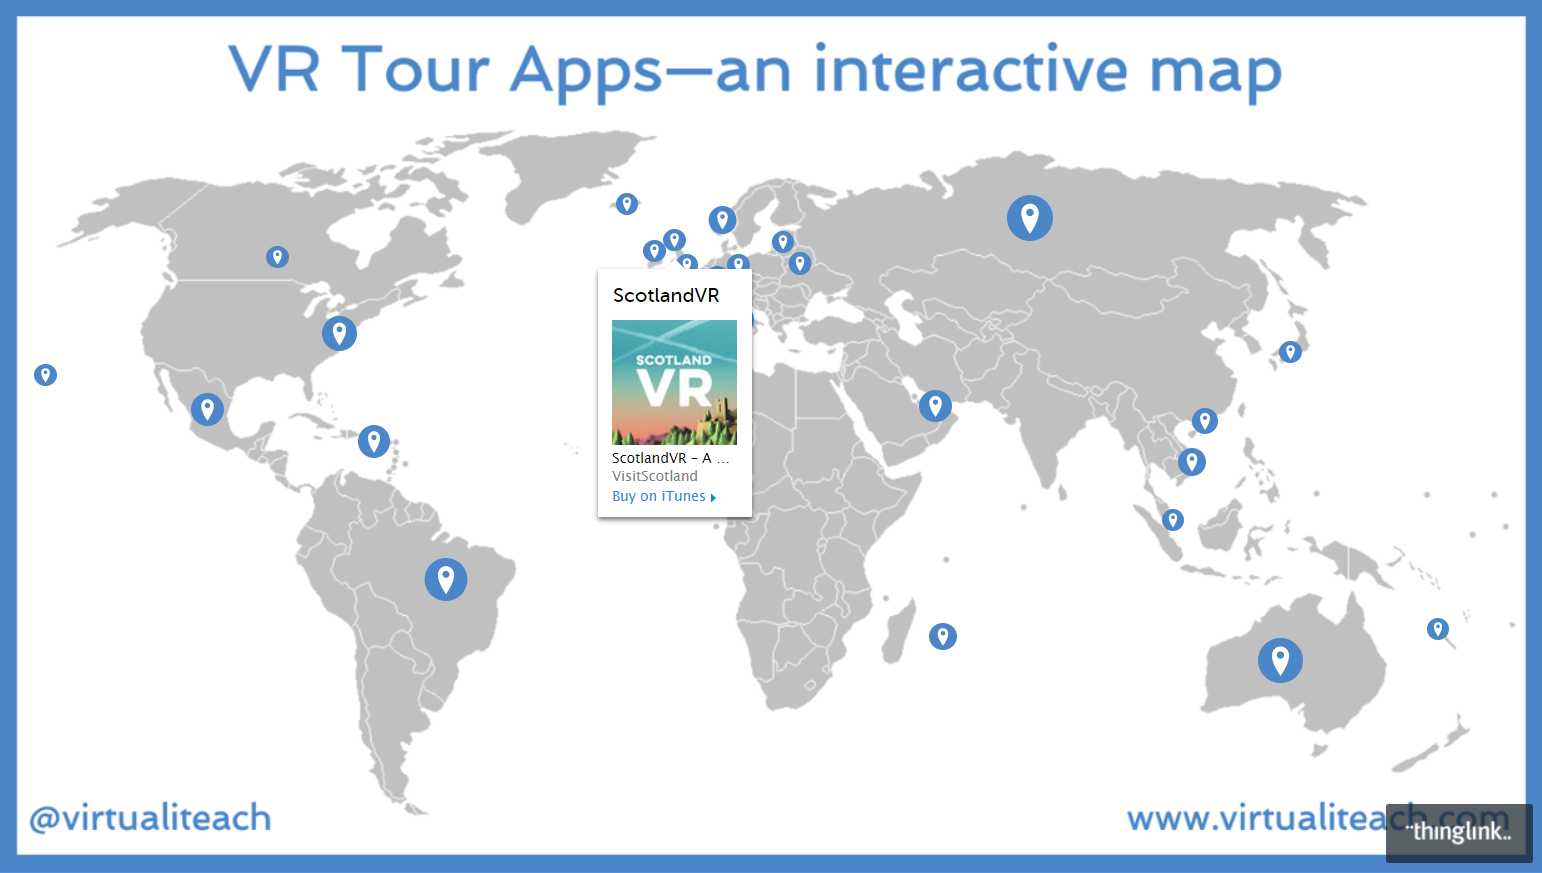 Vr tour apps an interactive map home virtualiteach gumiabroncs Images